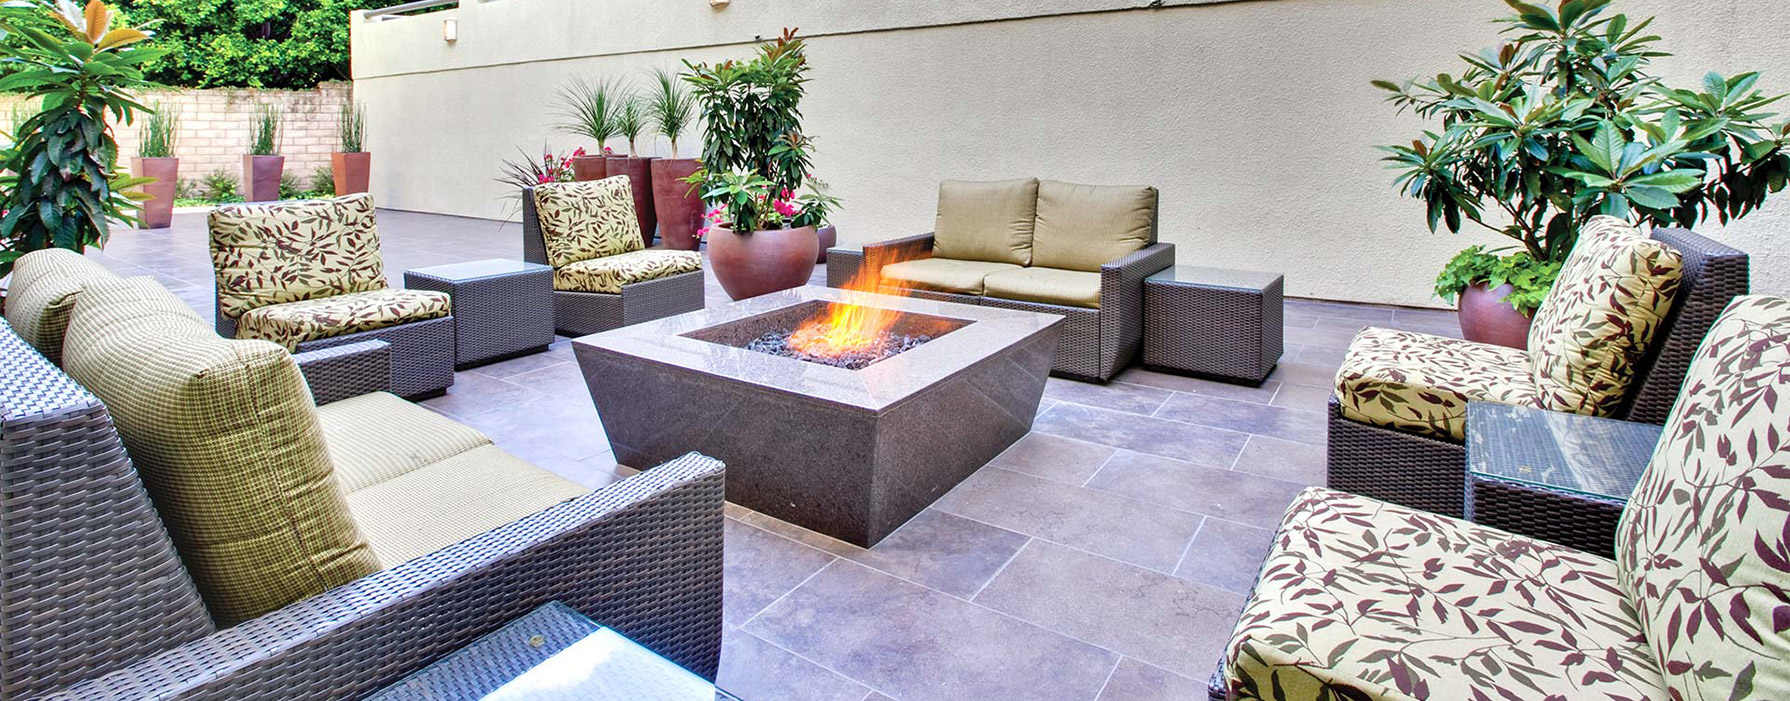 HillCreste - Los Angeles, CA - Outdoor Firepit